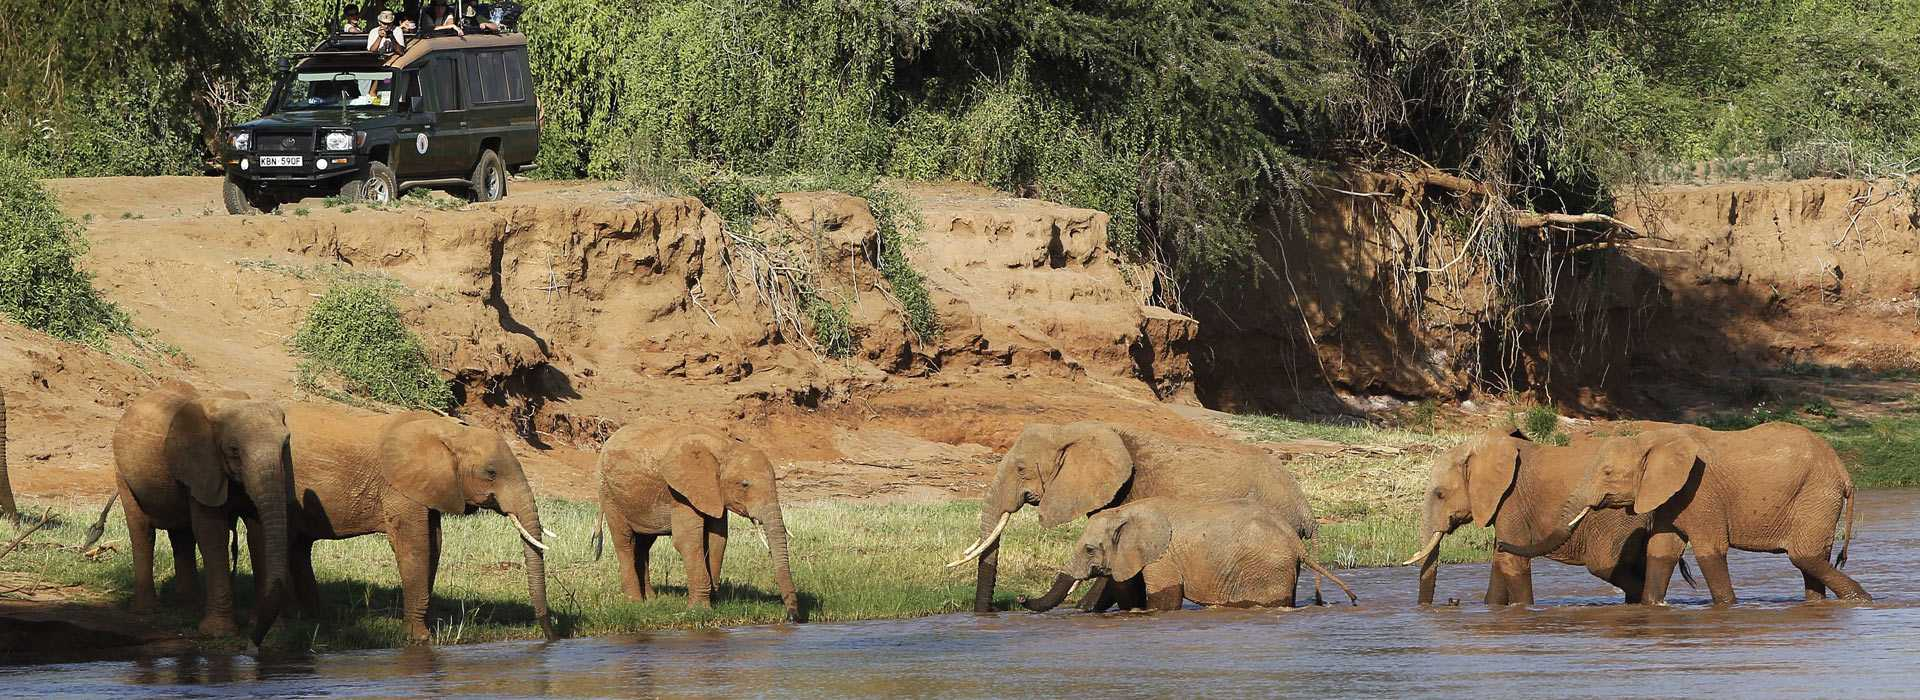 Elephants Bathing In Samburu, Kenya